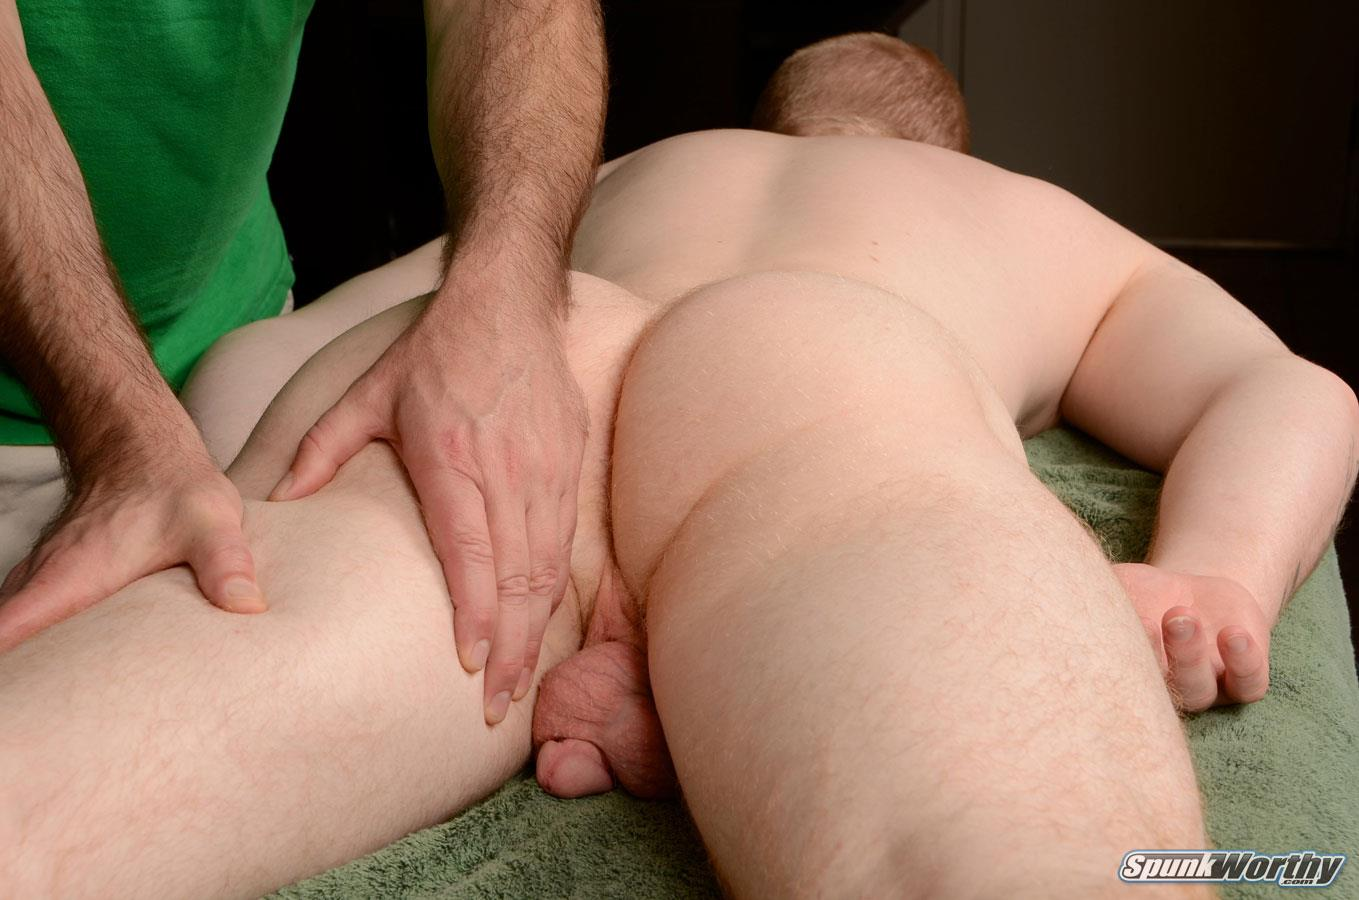 Spunkworthy Perry Straight Redhead Gets Massage With Happy Ending Amateur Gay Porn 06 Amateur Straight Redhead Gets A Massage With A Happy Ending